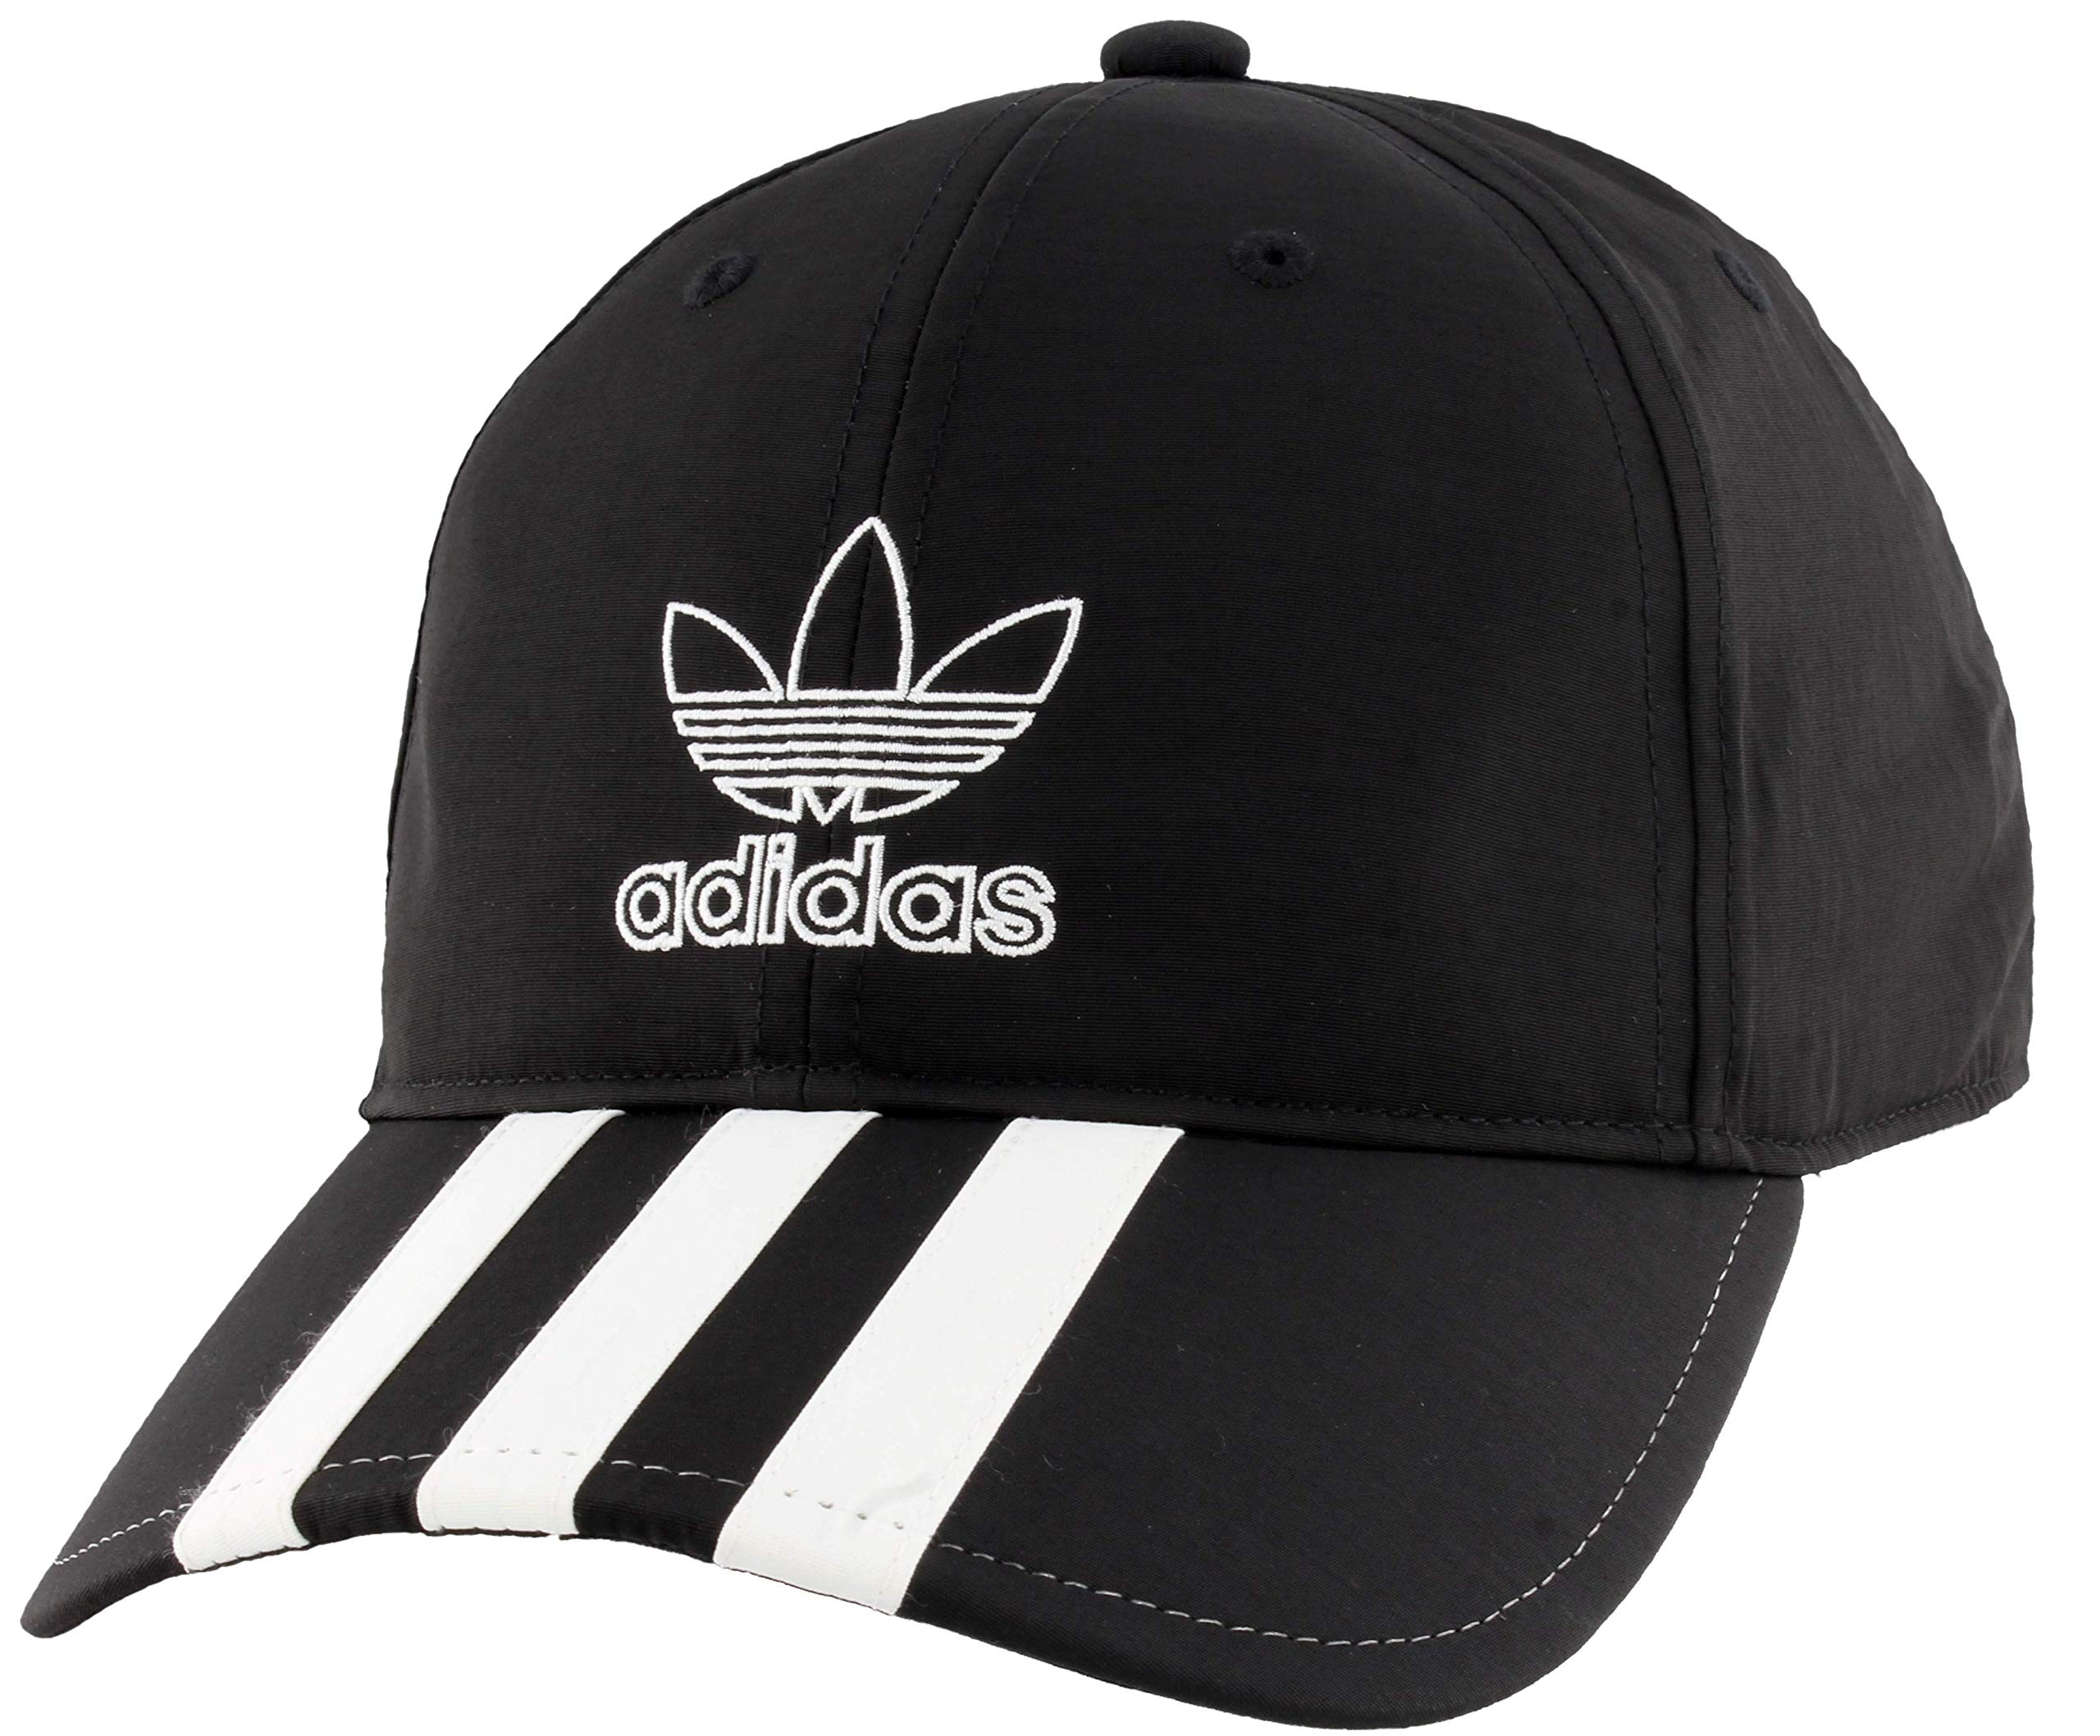 adidas Originals Men's Relaxed Applique Strapback Cap, Black/White, ONE SIZE by adidas